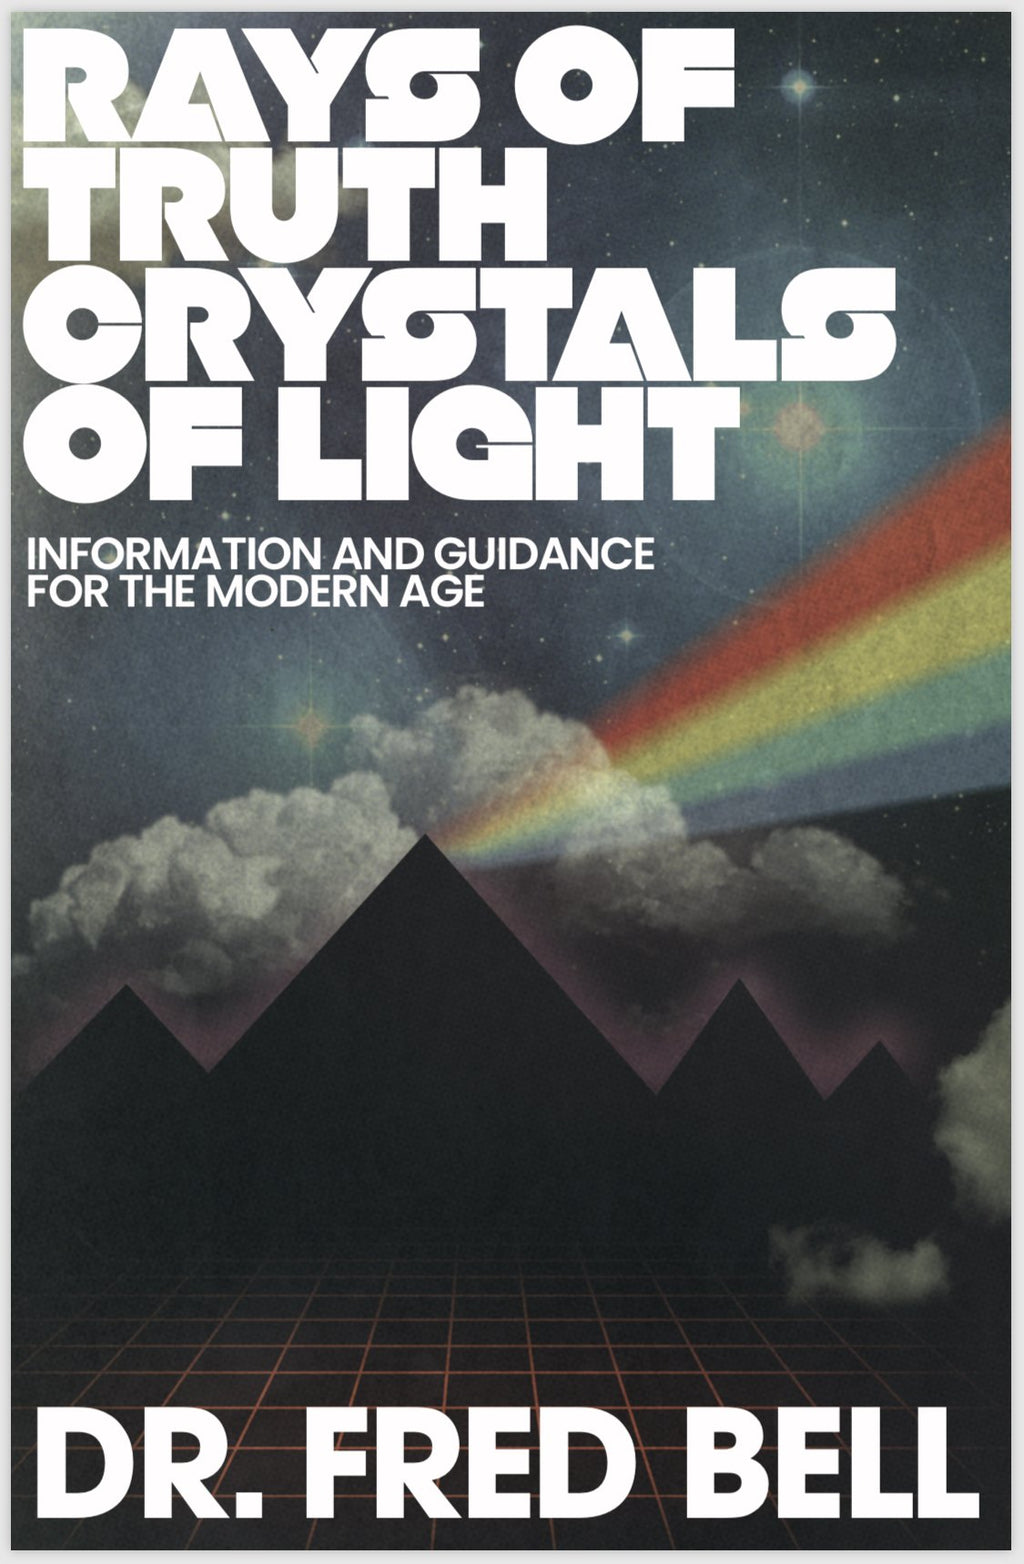 *NEW* Rays of Truth - Crystals of Light - eBook by Dr. Fred Bell - Pyradyne